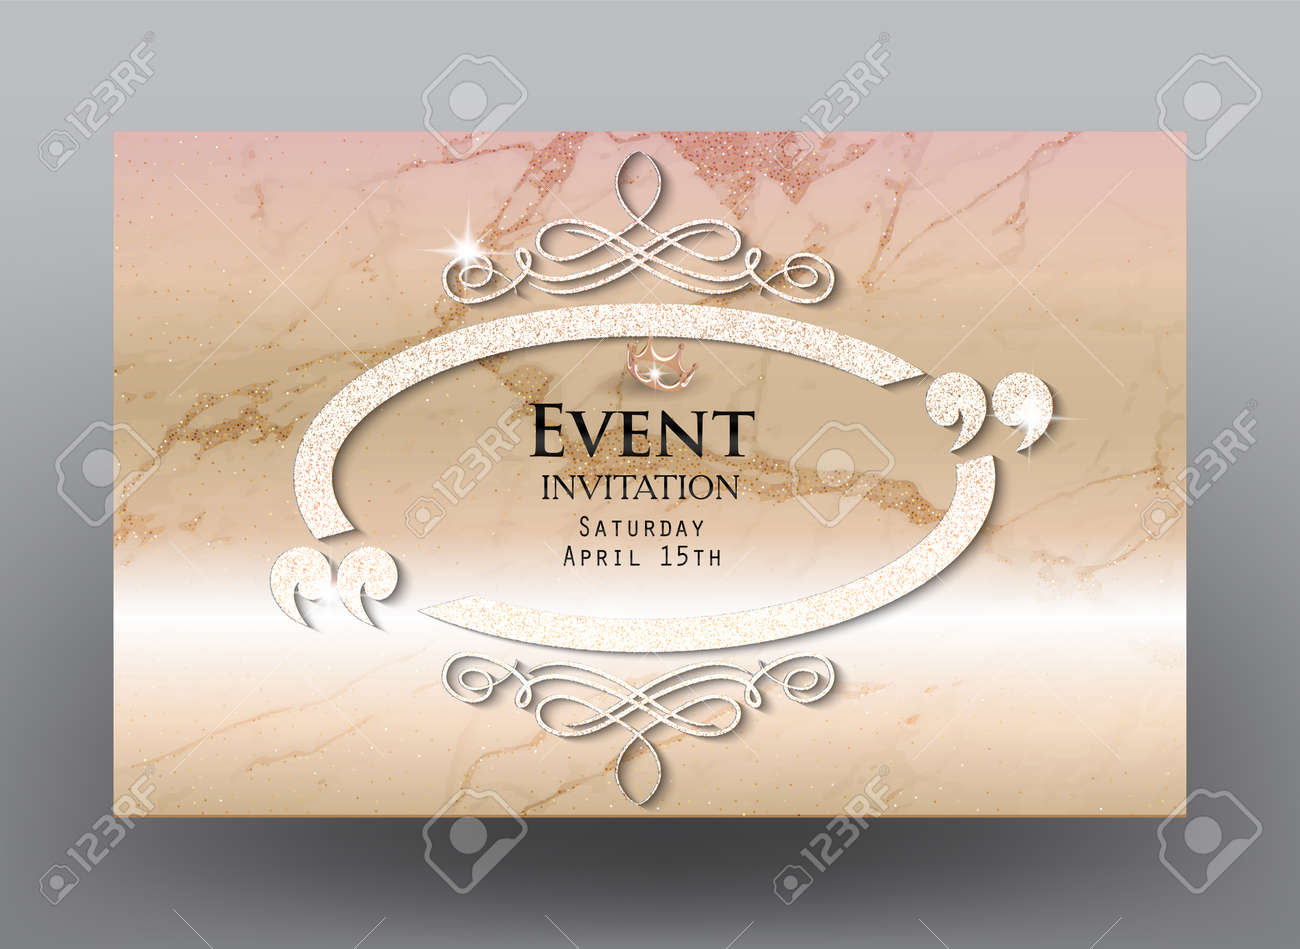 Invitation card with marble background sparkling vintage ellipse invitation card with marble background sparkling vintage ellipse frame with flourishes and quotes vector stopboris Image collections